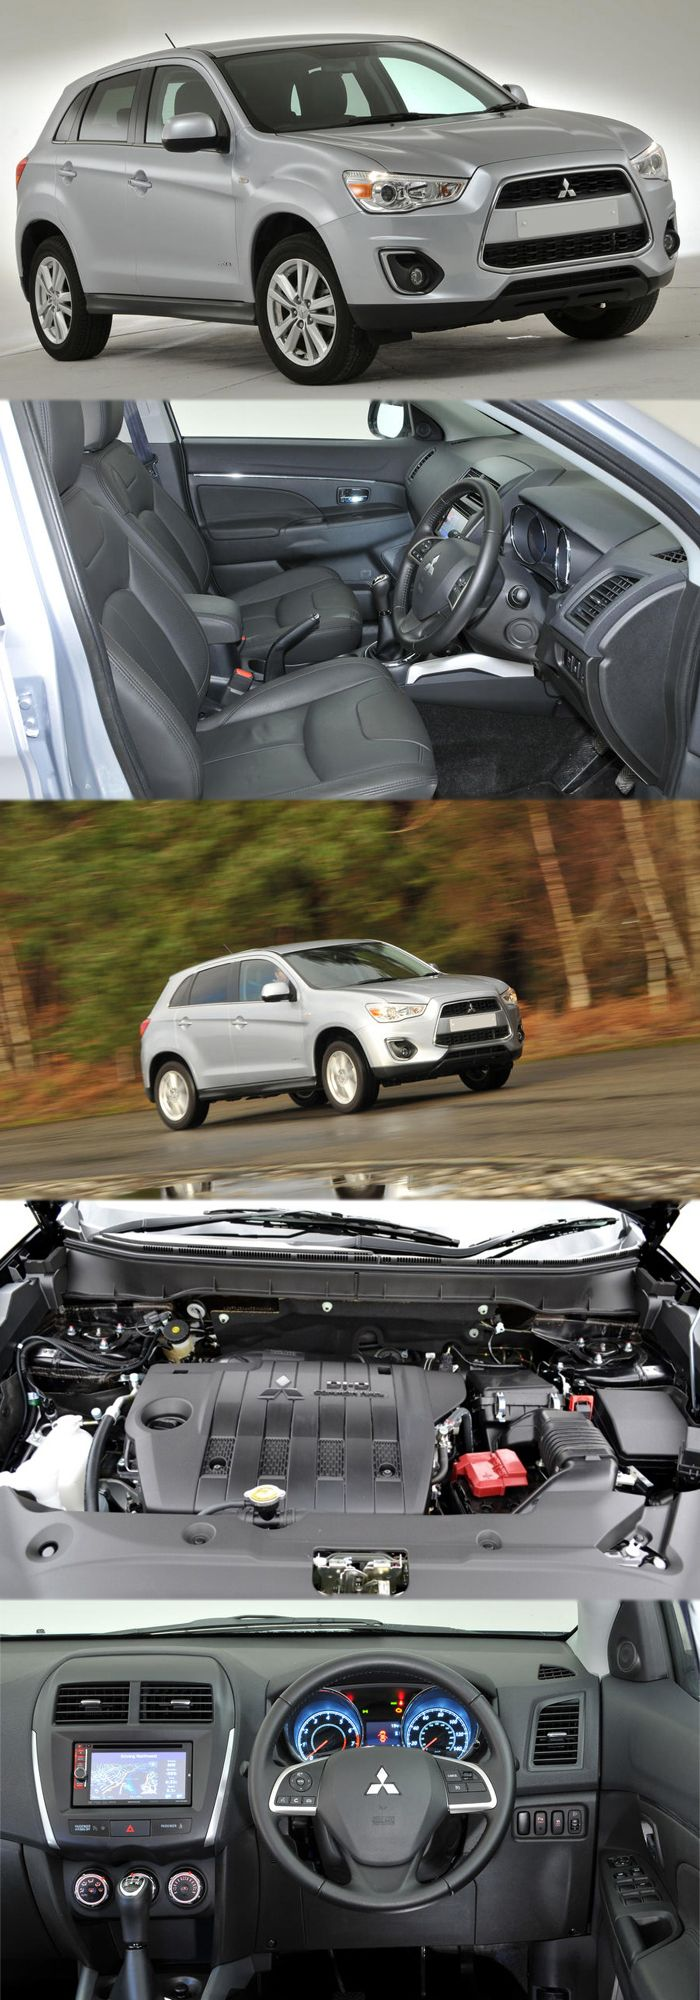 Mitsubishi asx is a good practical small suv https www enginetrust